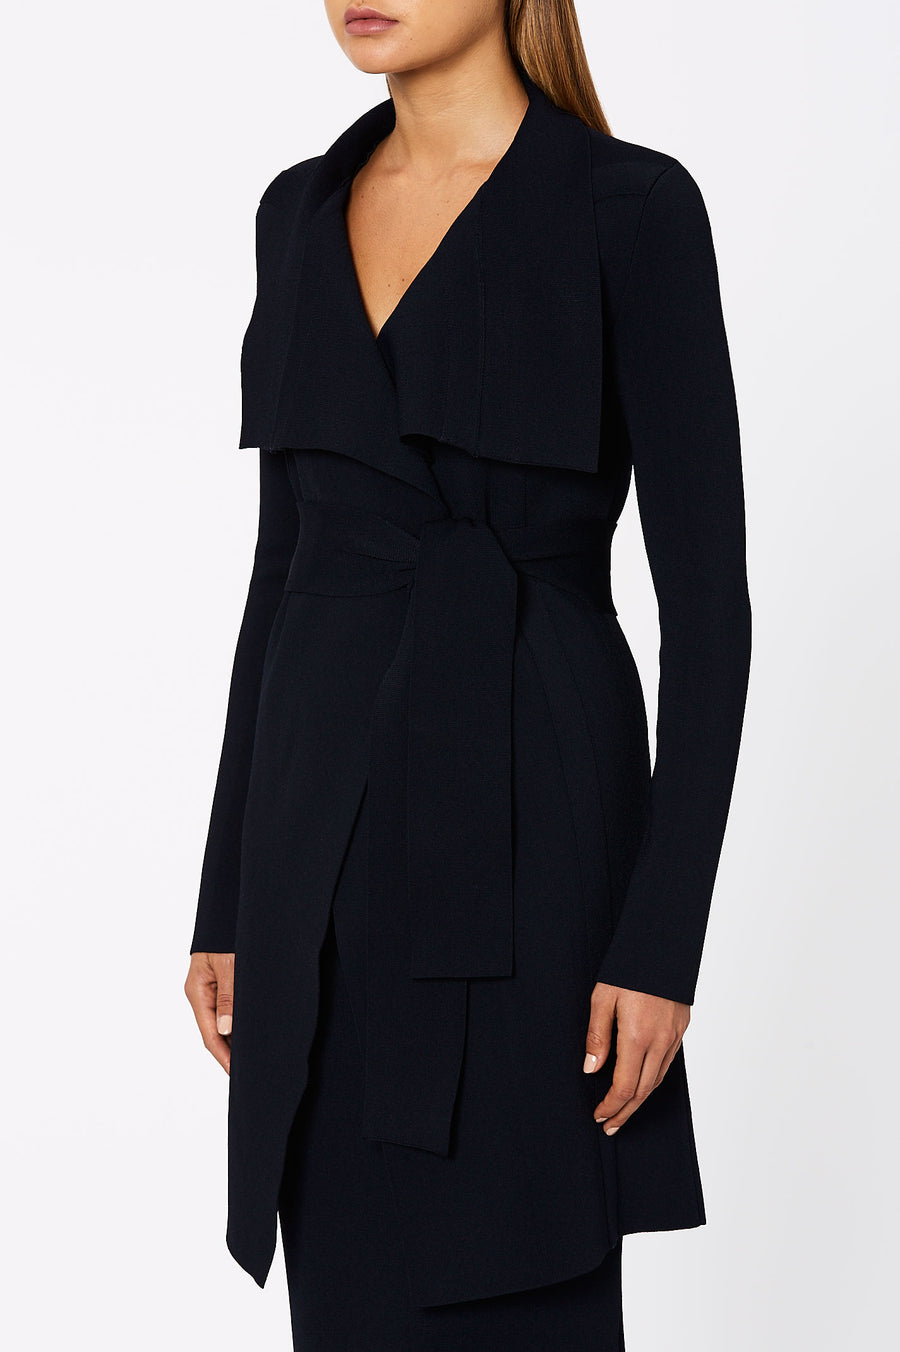 The Crepe Knit Drape Front Coat is a tailored style from our signature Drape Front Jacket.